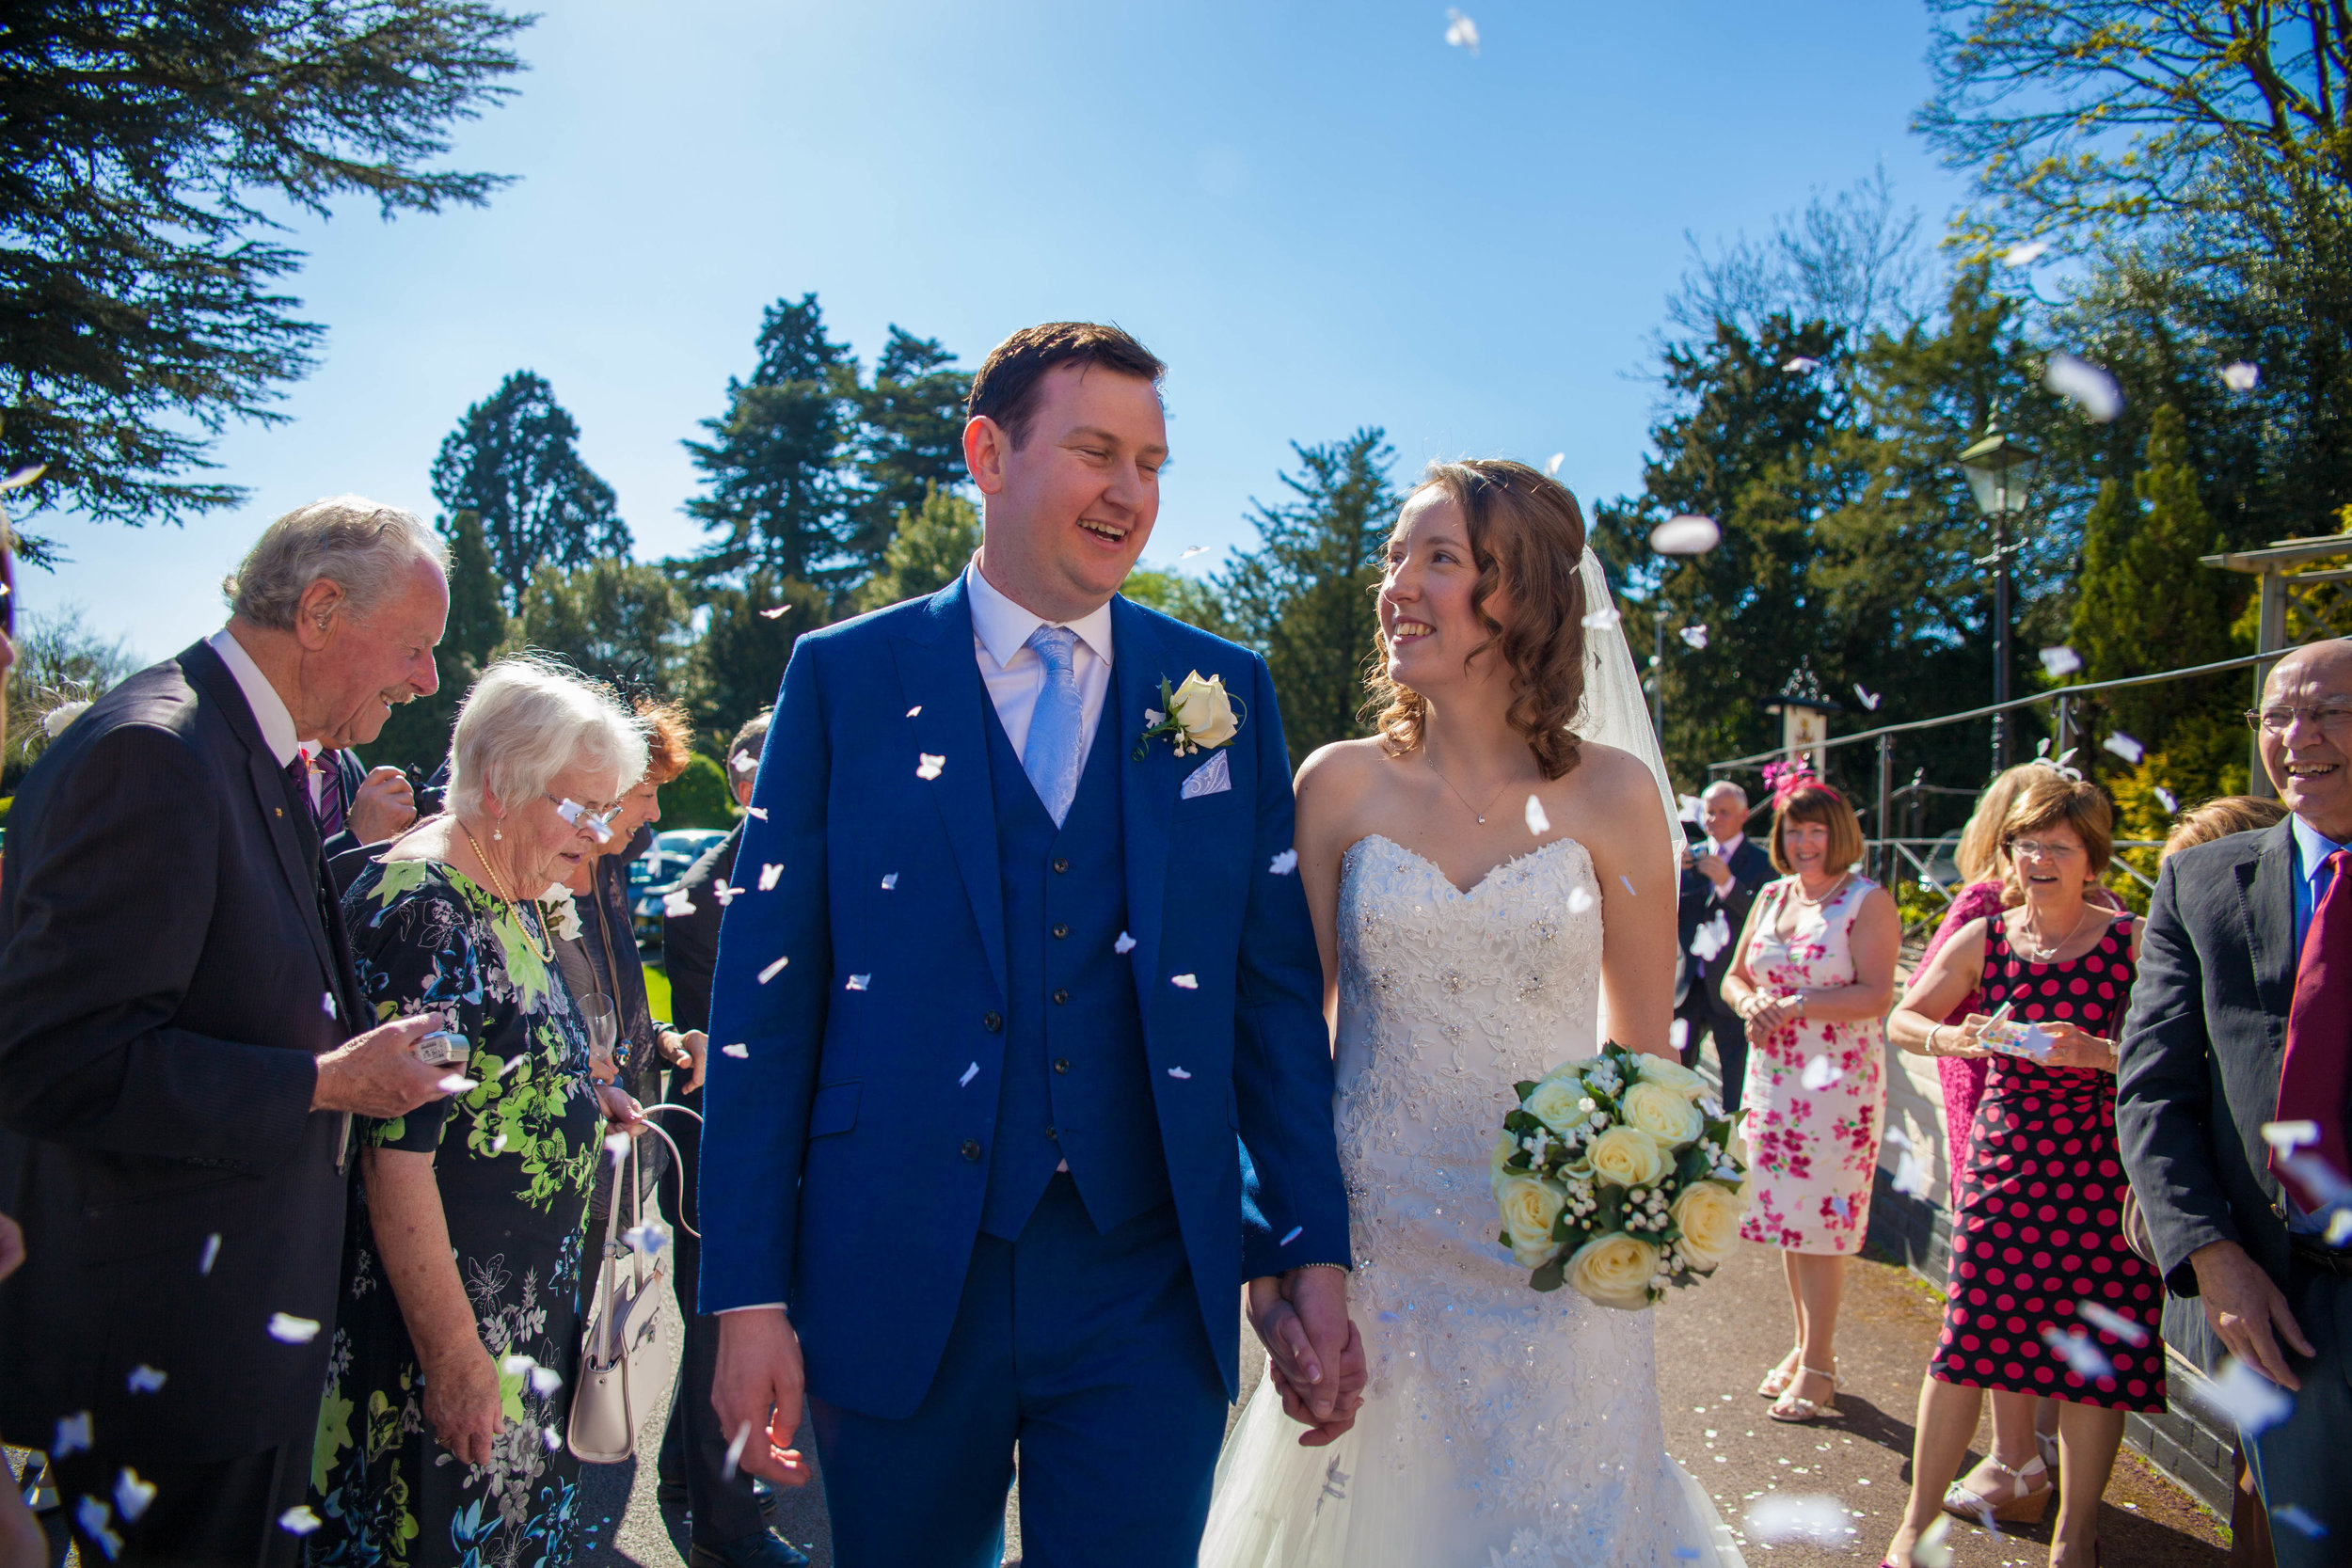 NLPhotography_Taplow_House-Wedding_Photographer_Emily&Alan_C-367.jpg